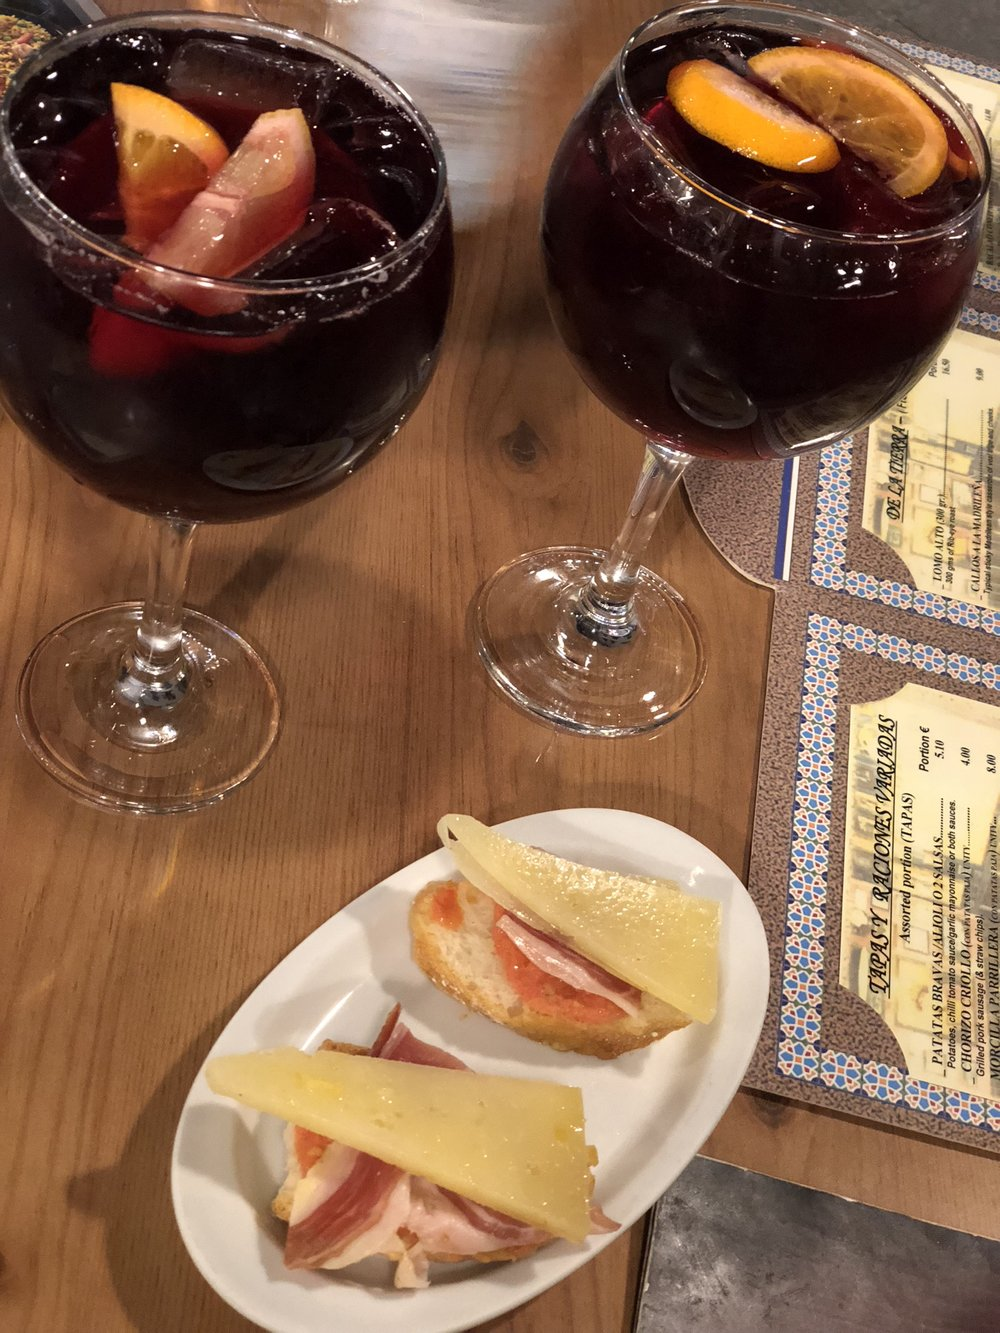 Enjoying sangria & tapas on an overnight layover in Madrid, Spain